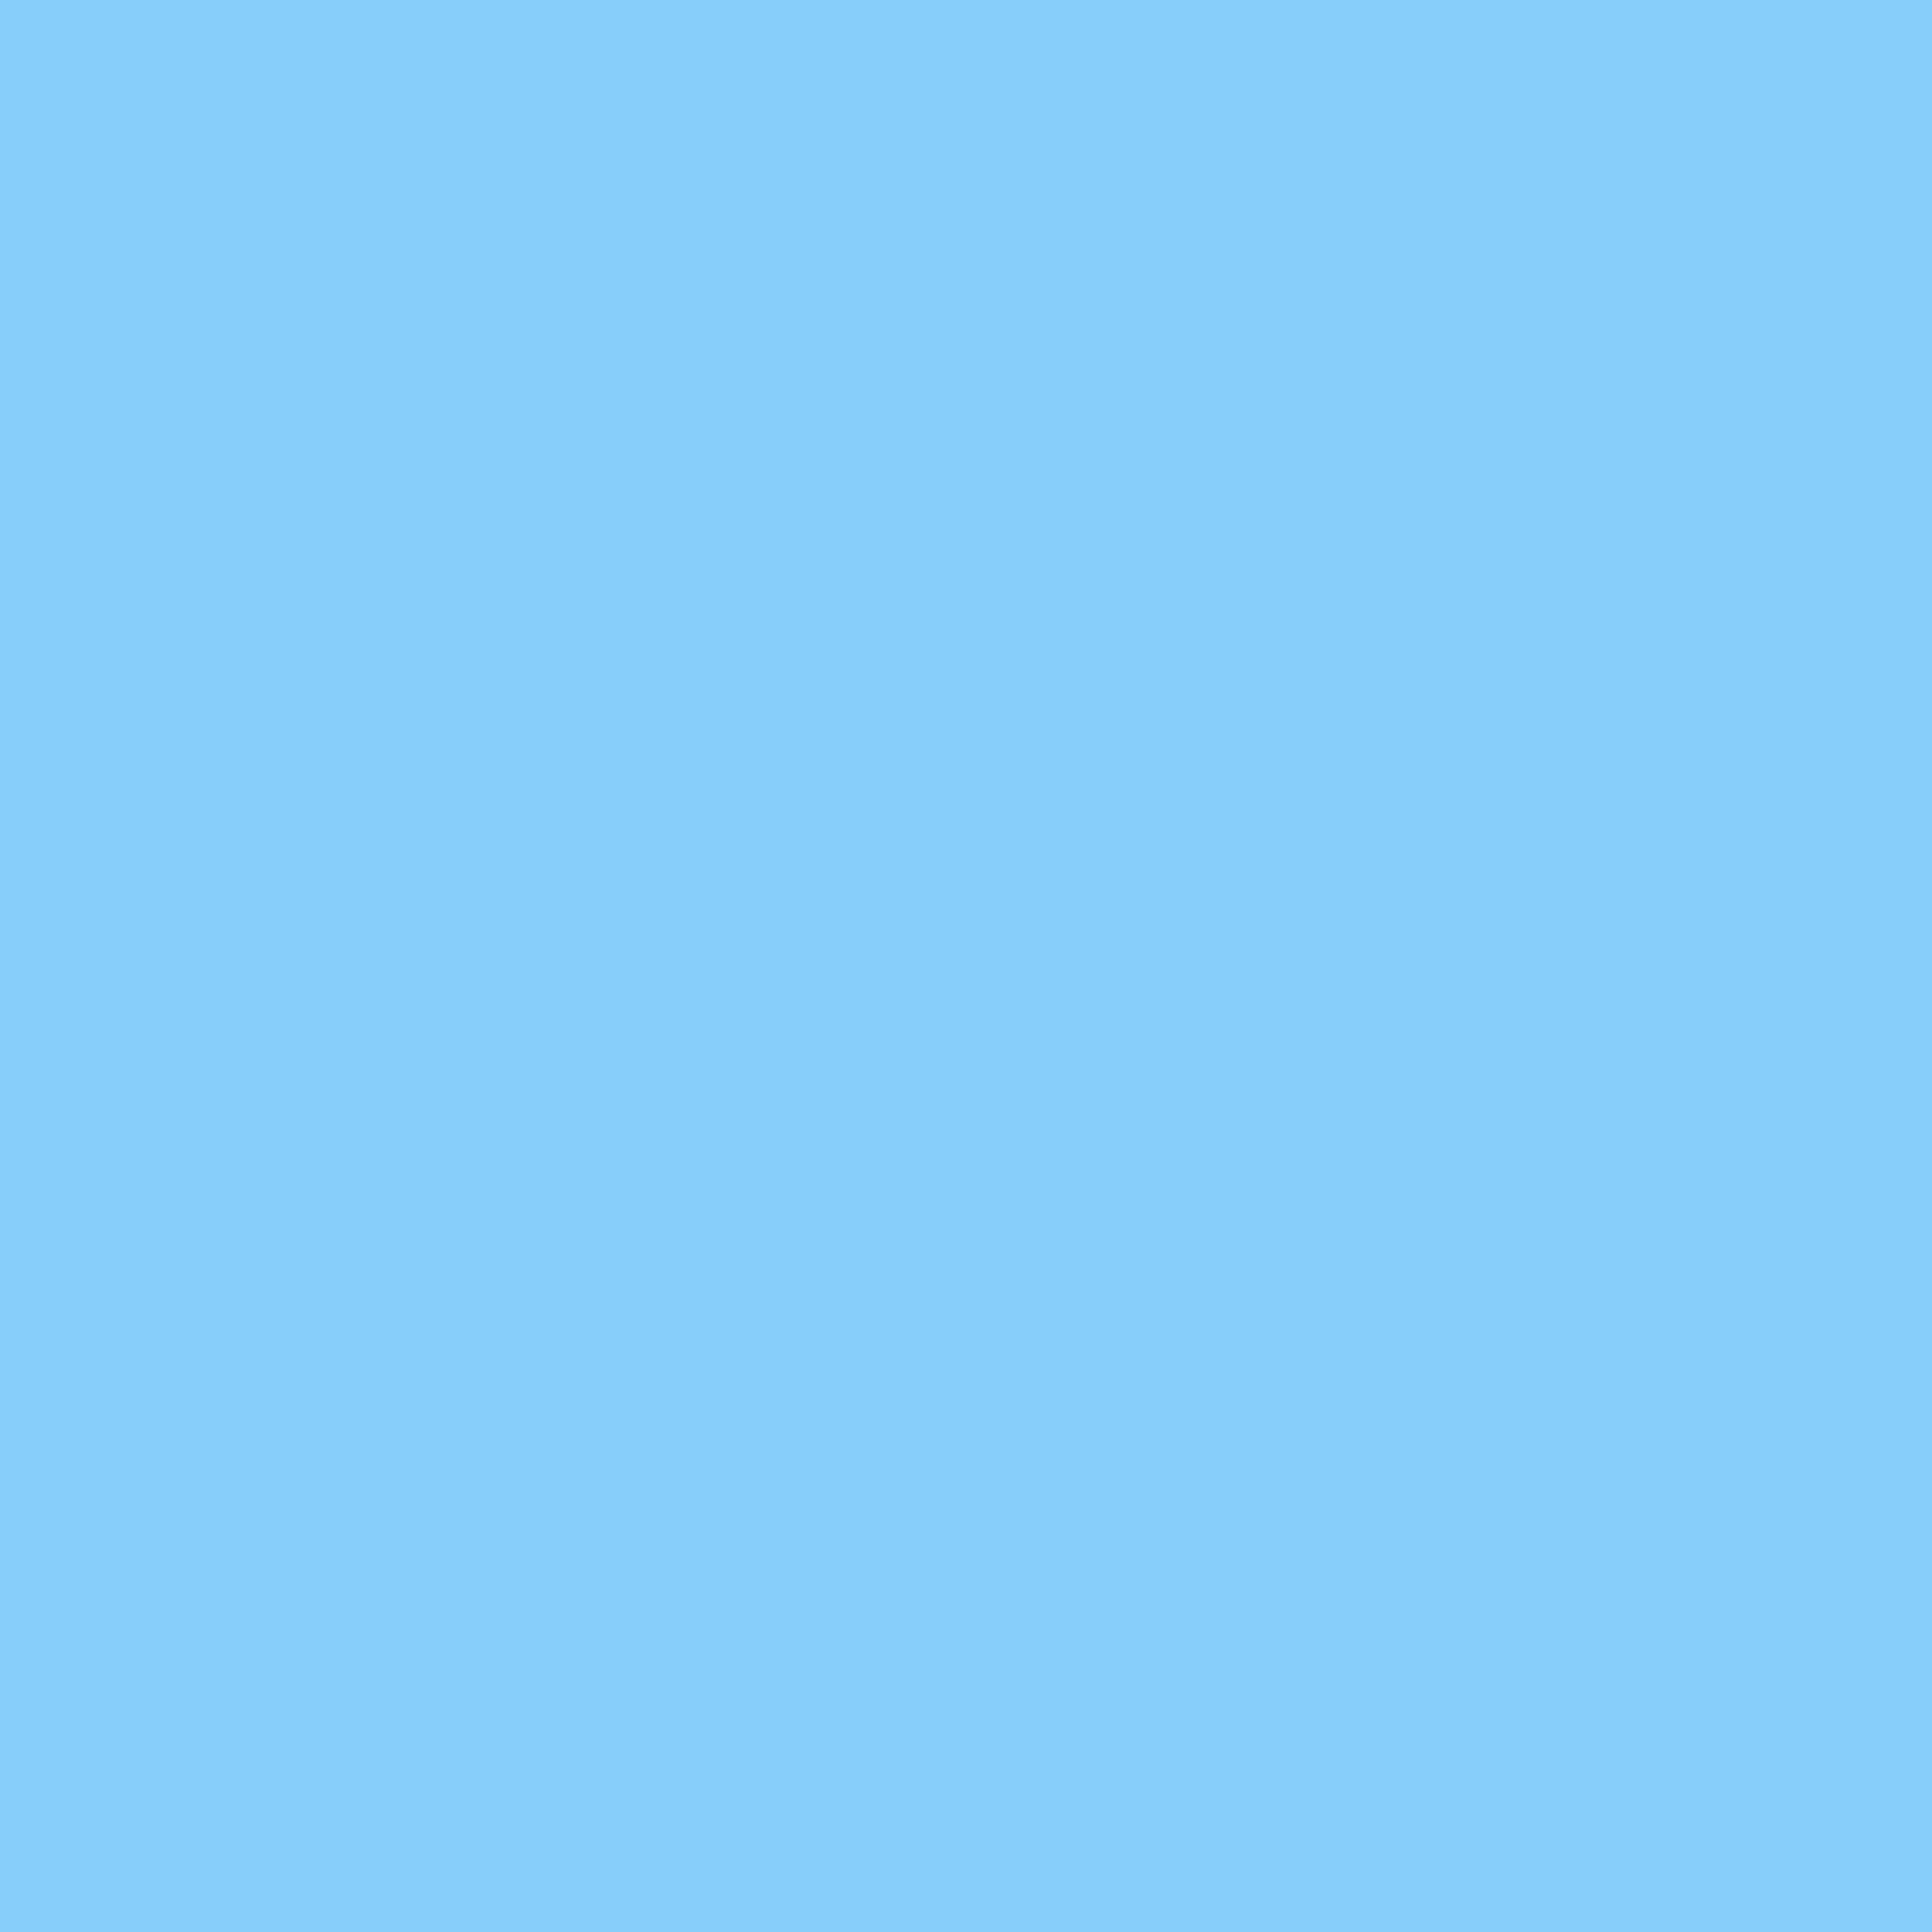 2732x2732 Light Sky Blue Solid Color Background